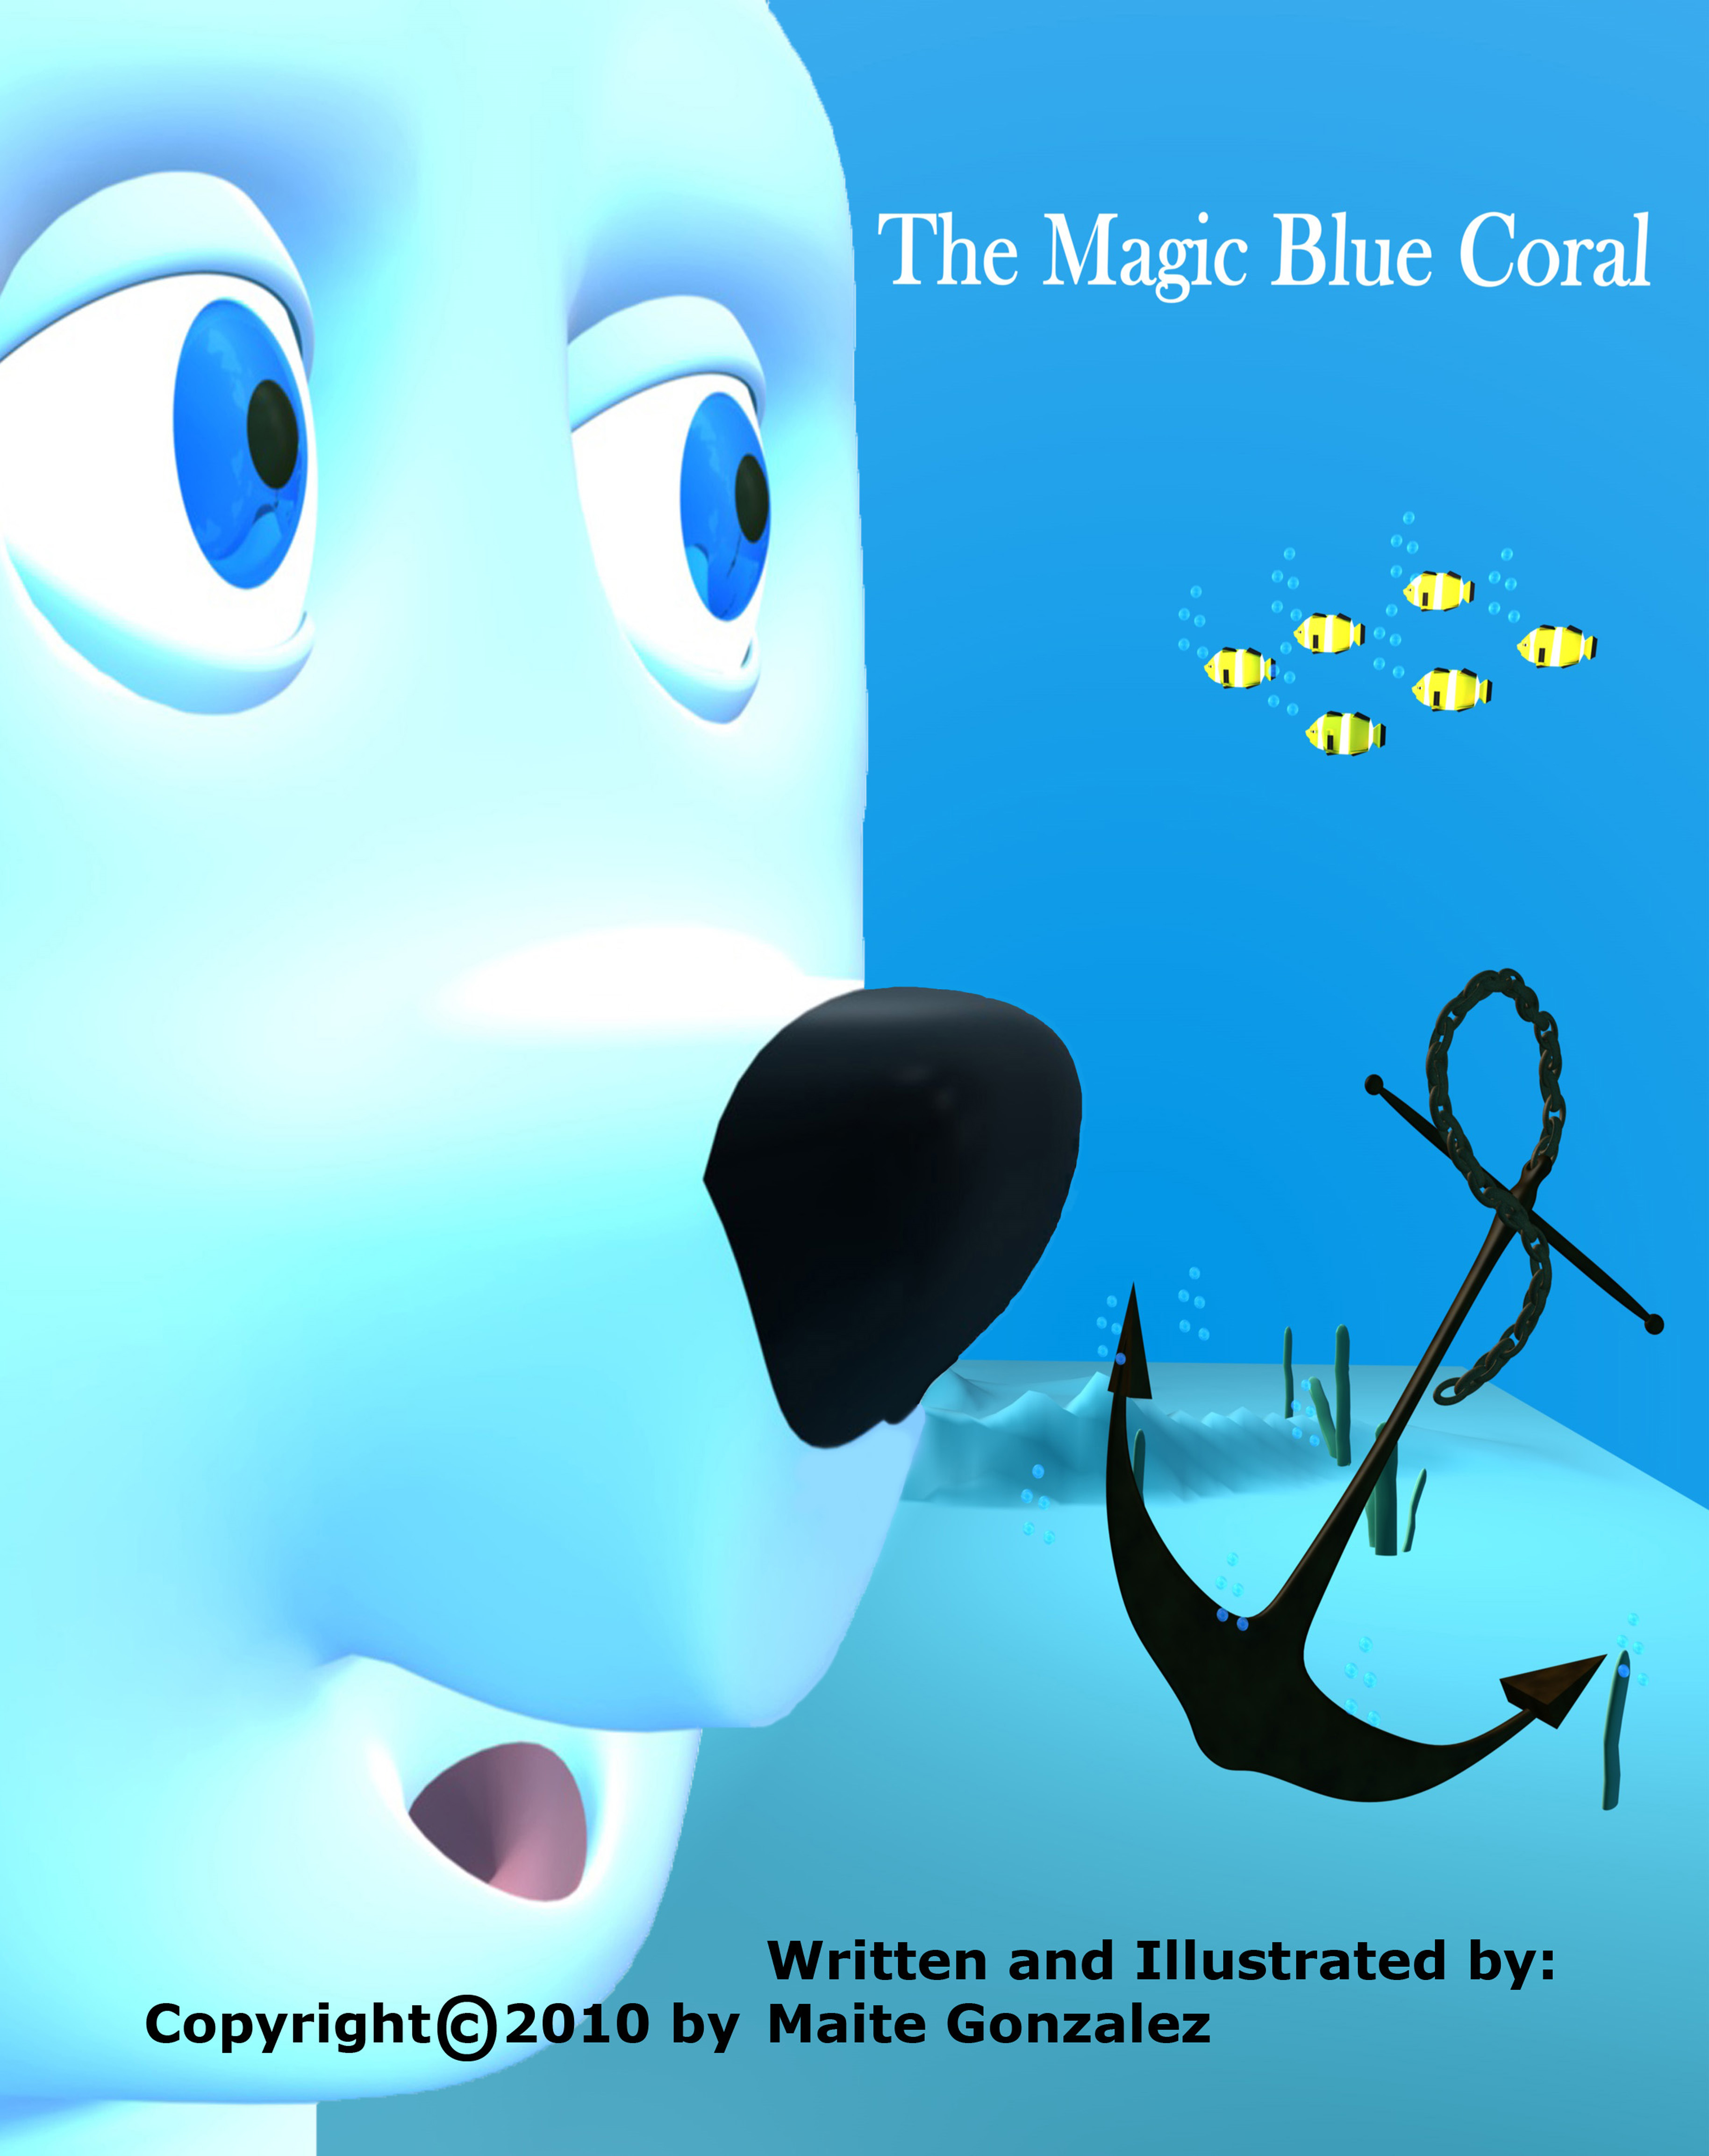 The Magic Blue Coral